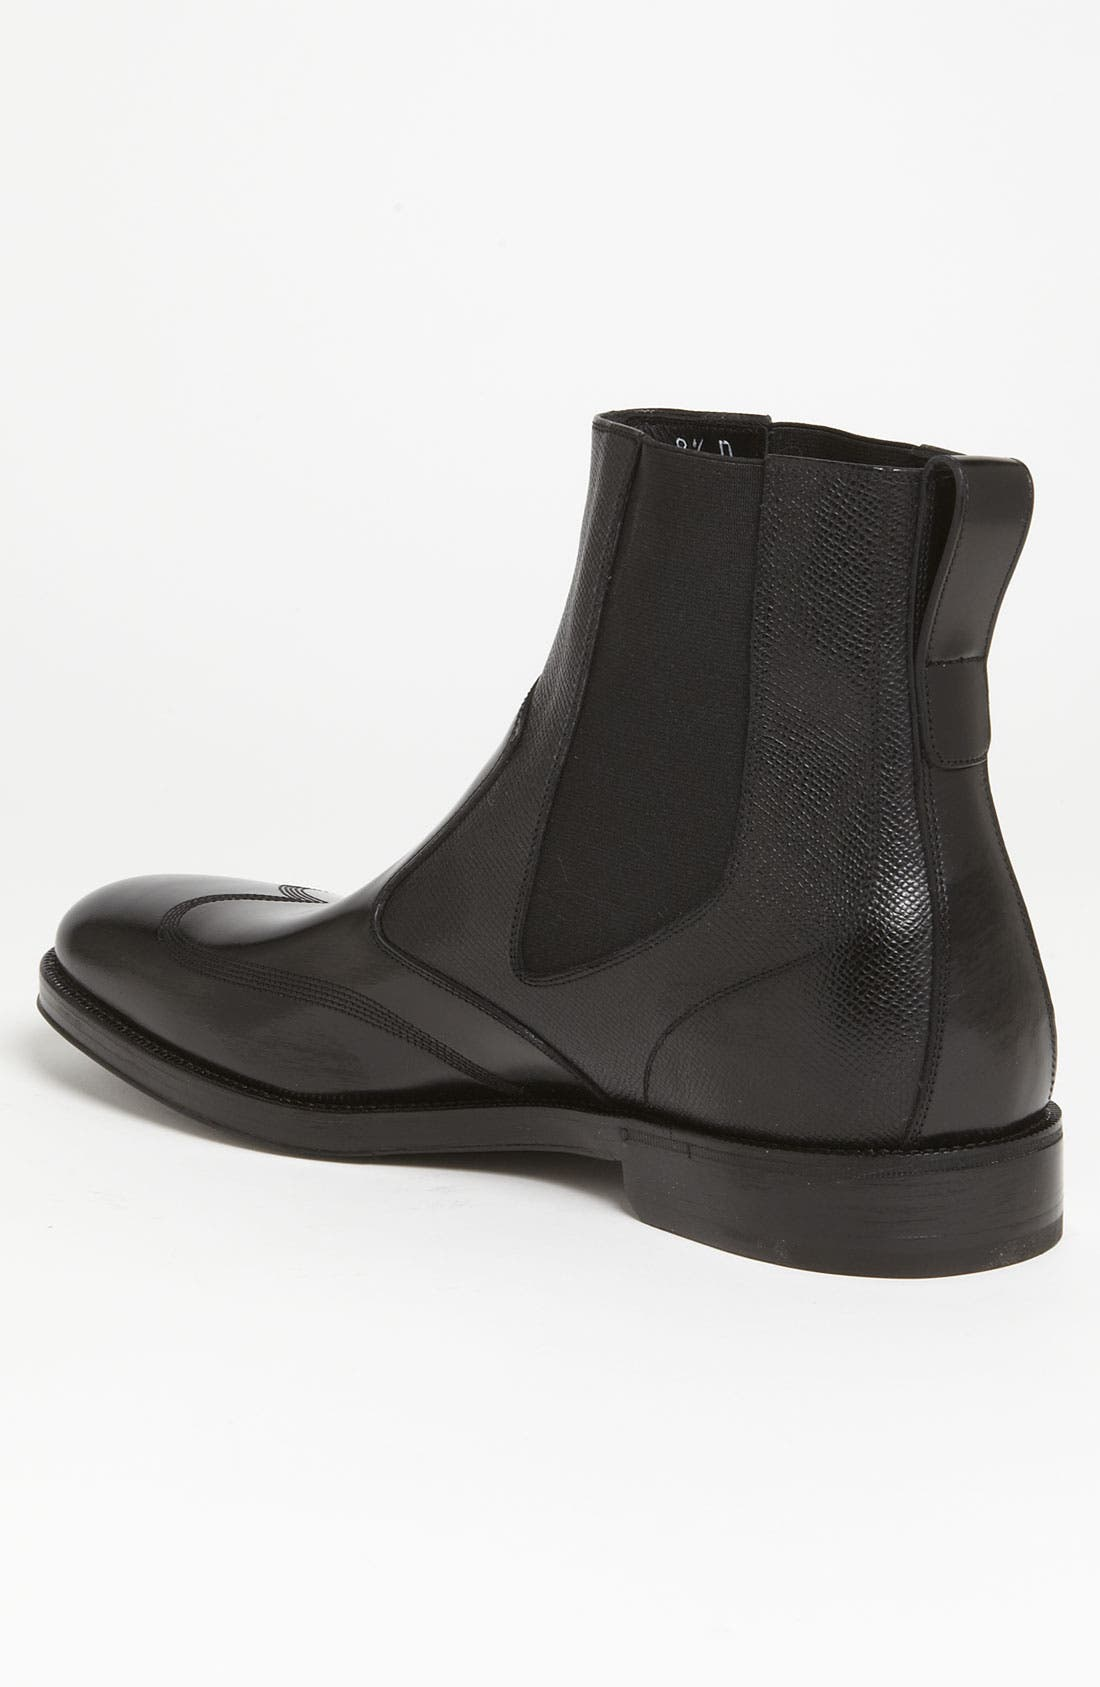 Alternate Image 2  - Salvatore Ferragamo 'Aritz' Wingtip Chelsea Boot